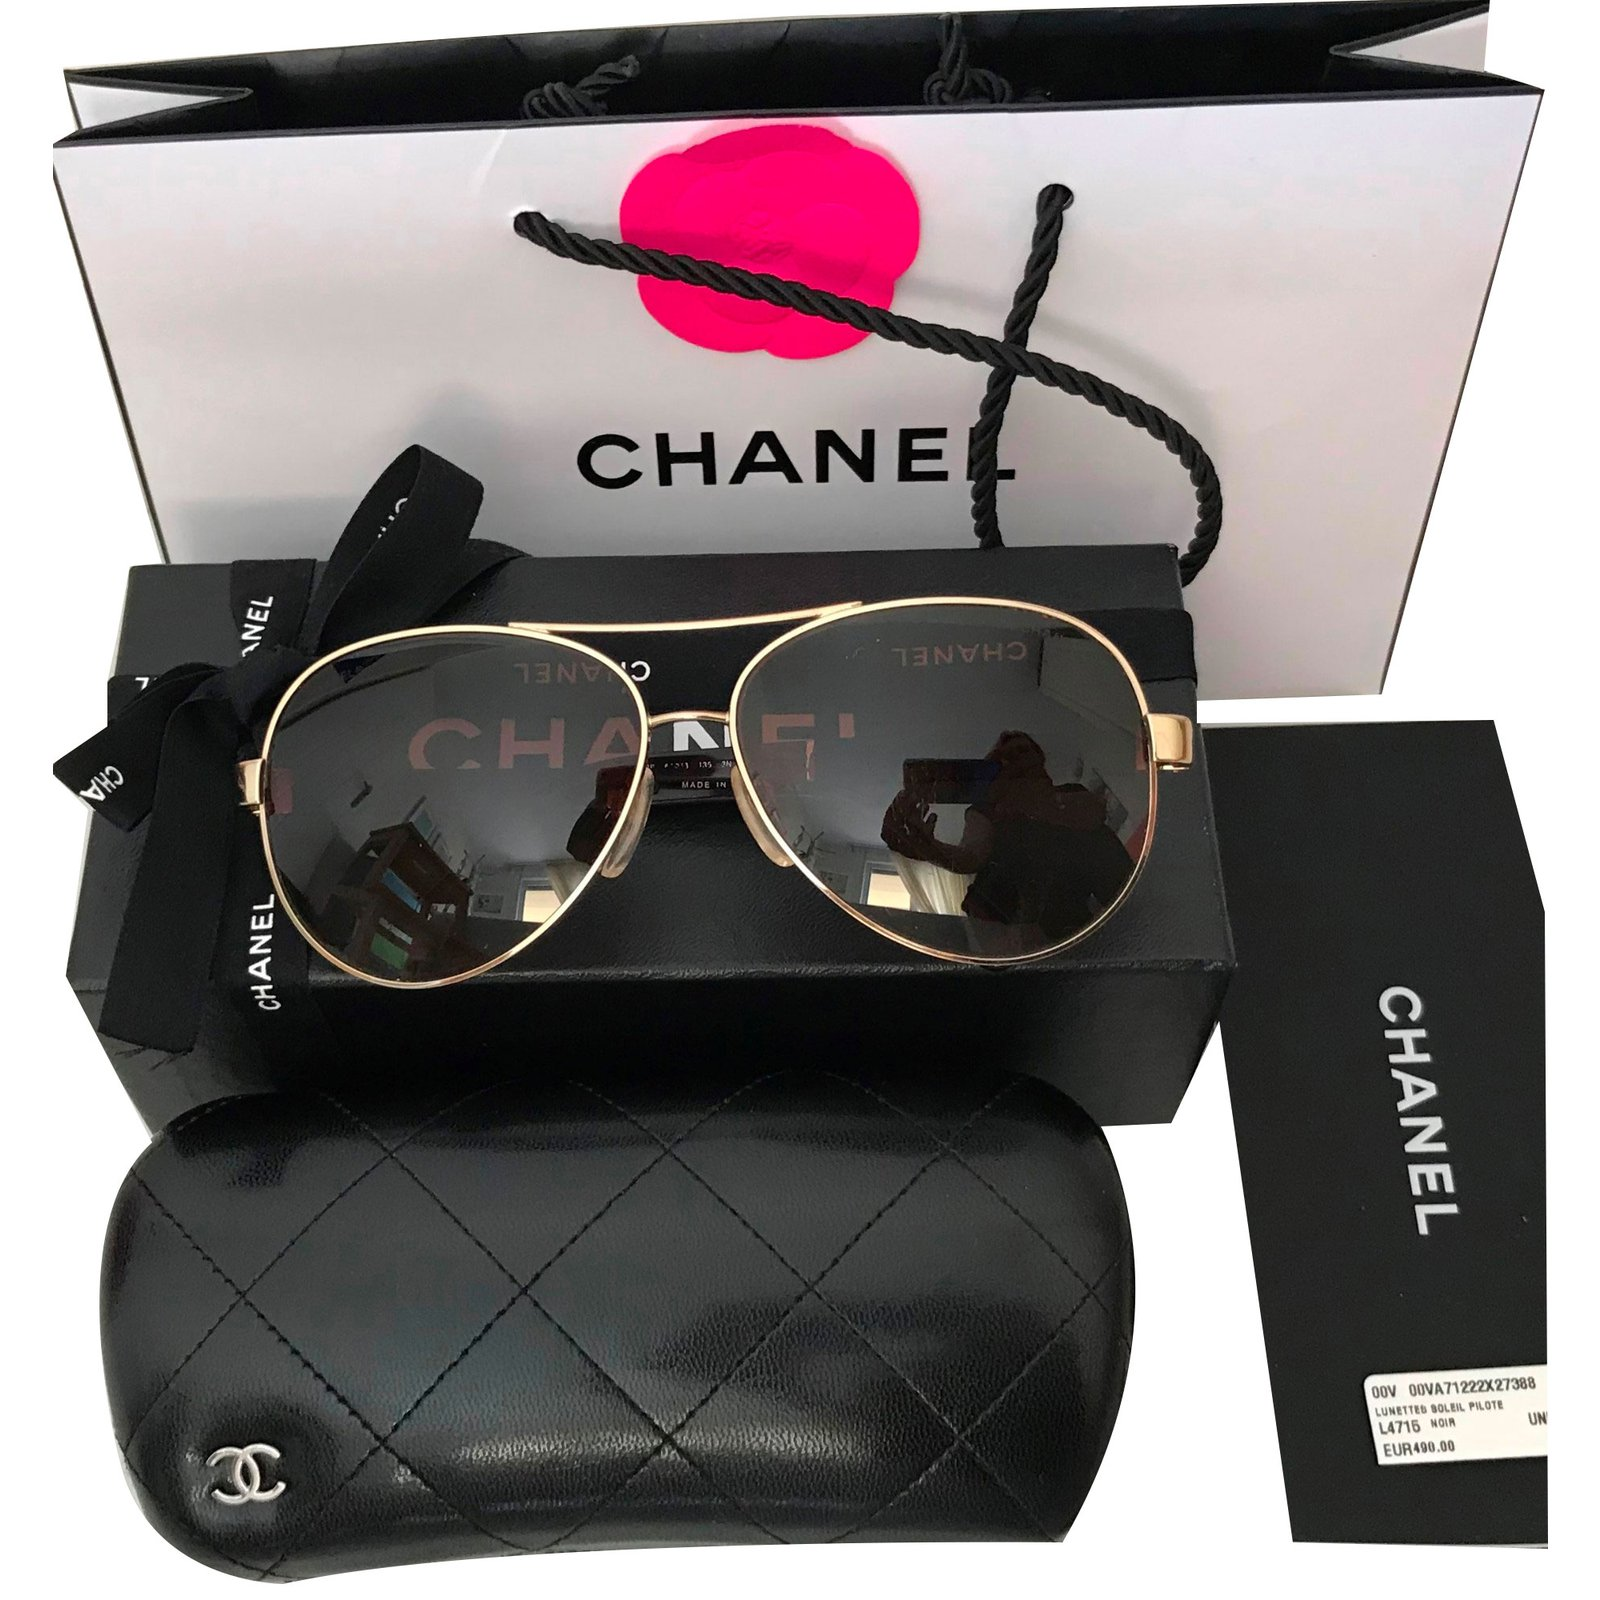 cc40a2e4be Facebook · Pin This. Chanel Sunglasses Sunglasses Metal Golden ref.73392